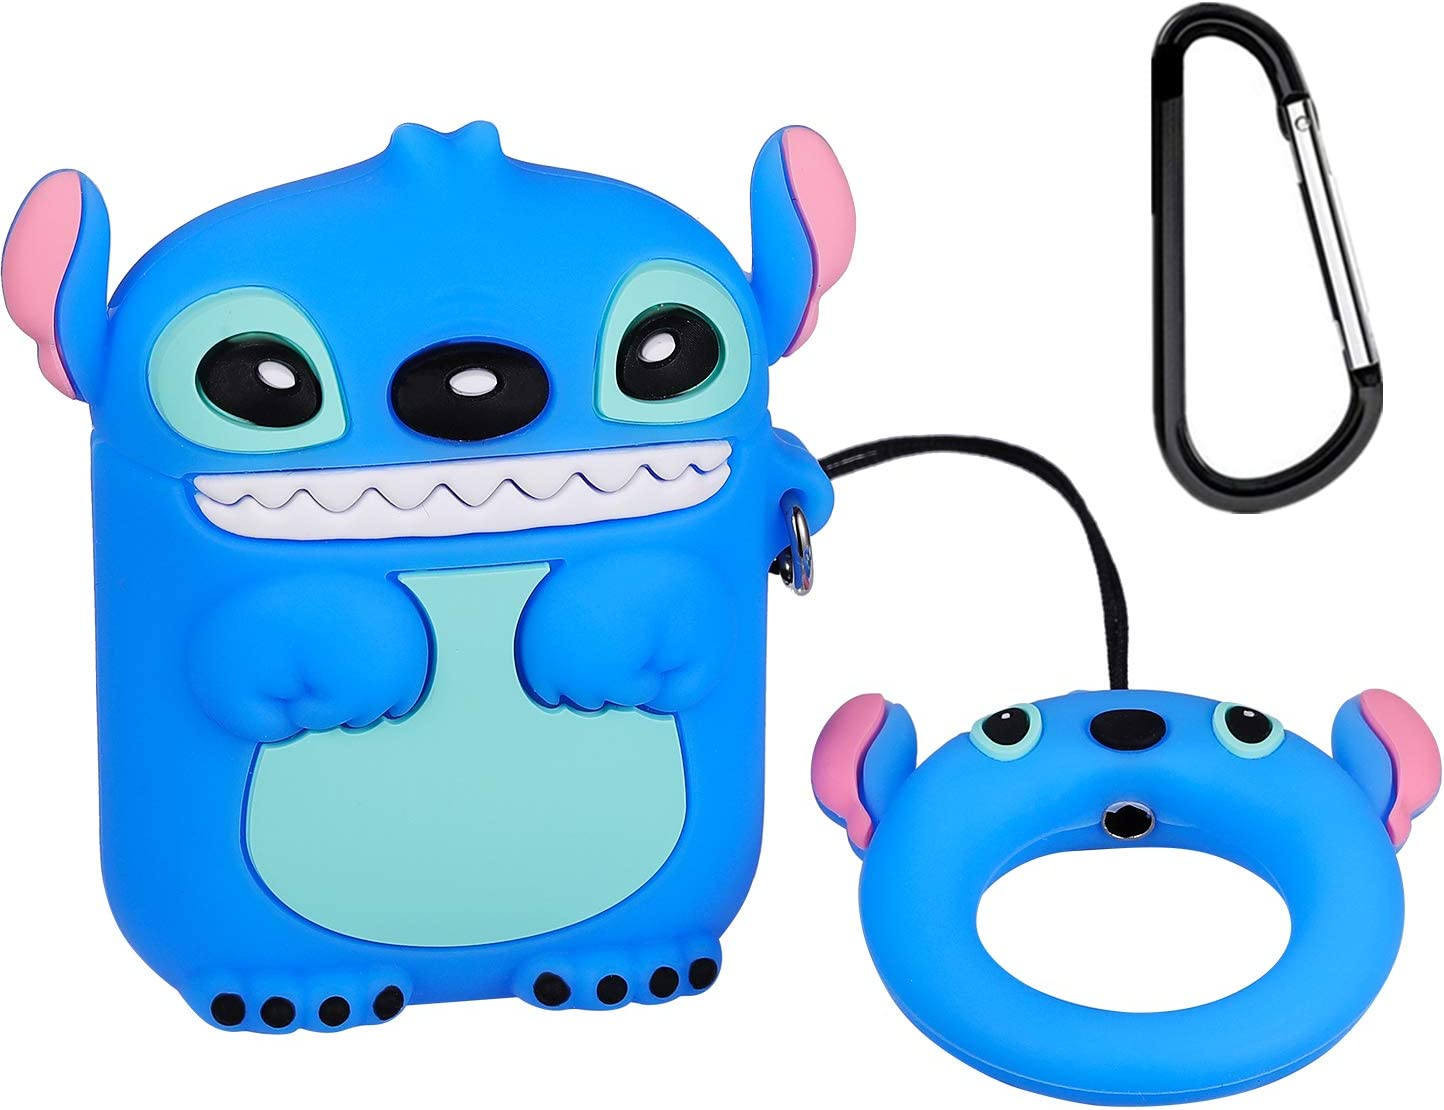 Logee 3D Stitch Case for Airpods 1&2,Cute Character Silicone 3D Funny Cartoon Airpod Cover,Soft Kawaii Fun Cool Animal Skin Kits with Carabiner,Unique Cases for Girls Kids Teens Women Air pods